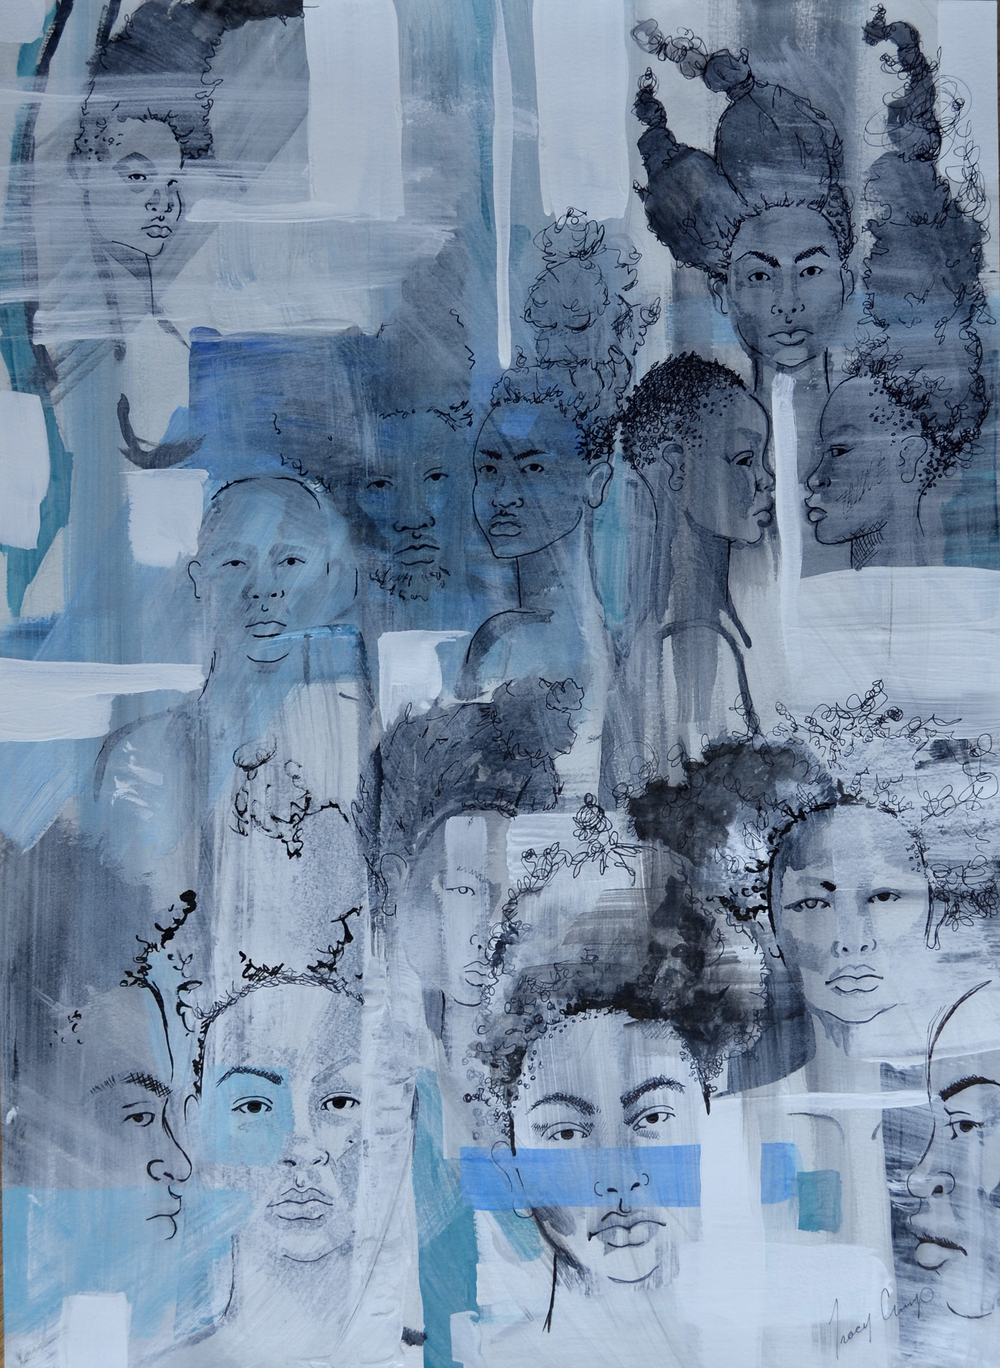 The People people 1   acrylic, pen and ink, h 24 w 18 inches